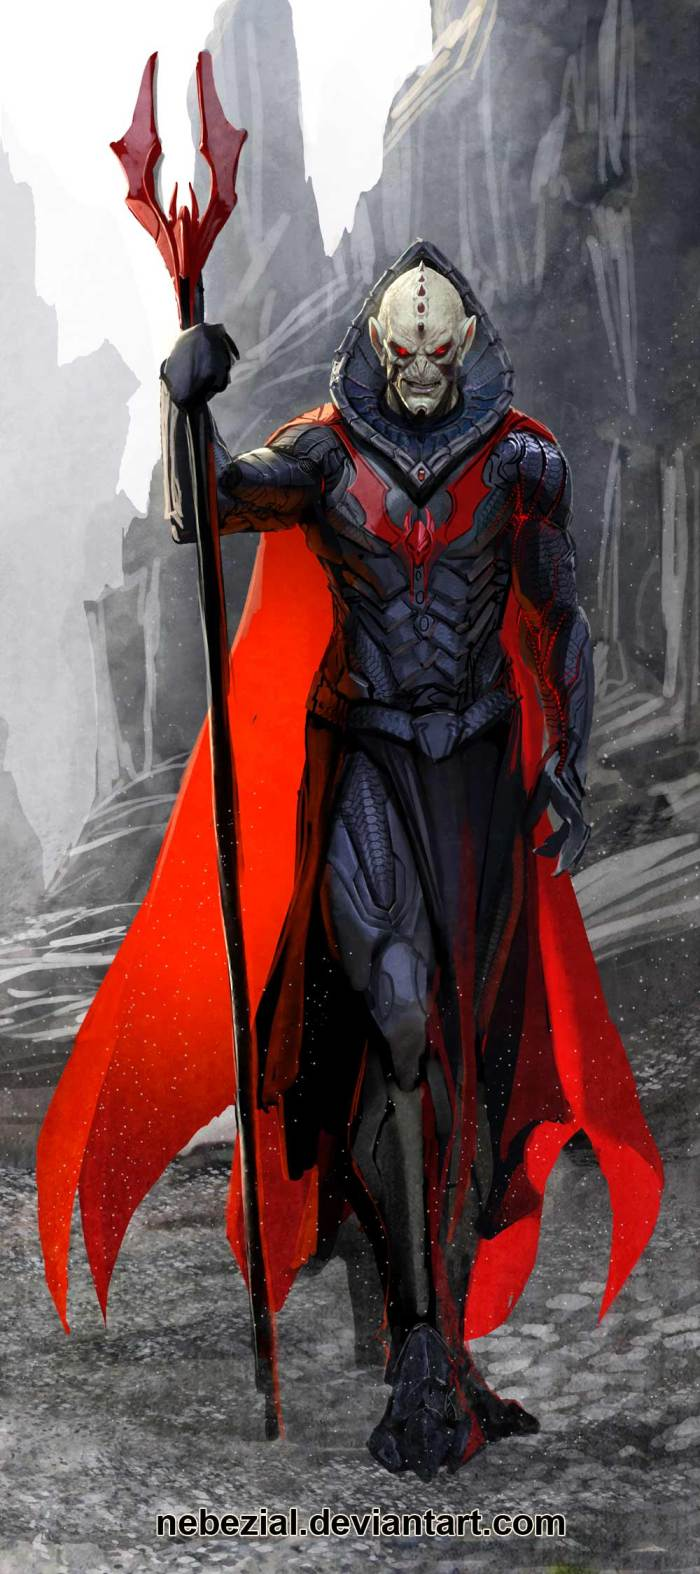 did_i_ever_mention_hordak_was_my_fav_villain__by_nebezial-d576cpz.jpg